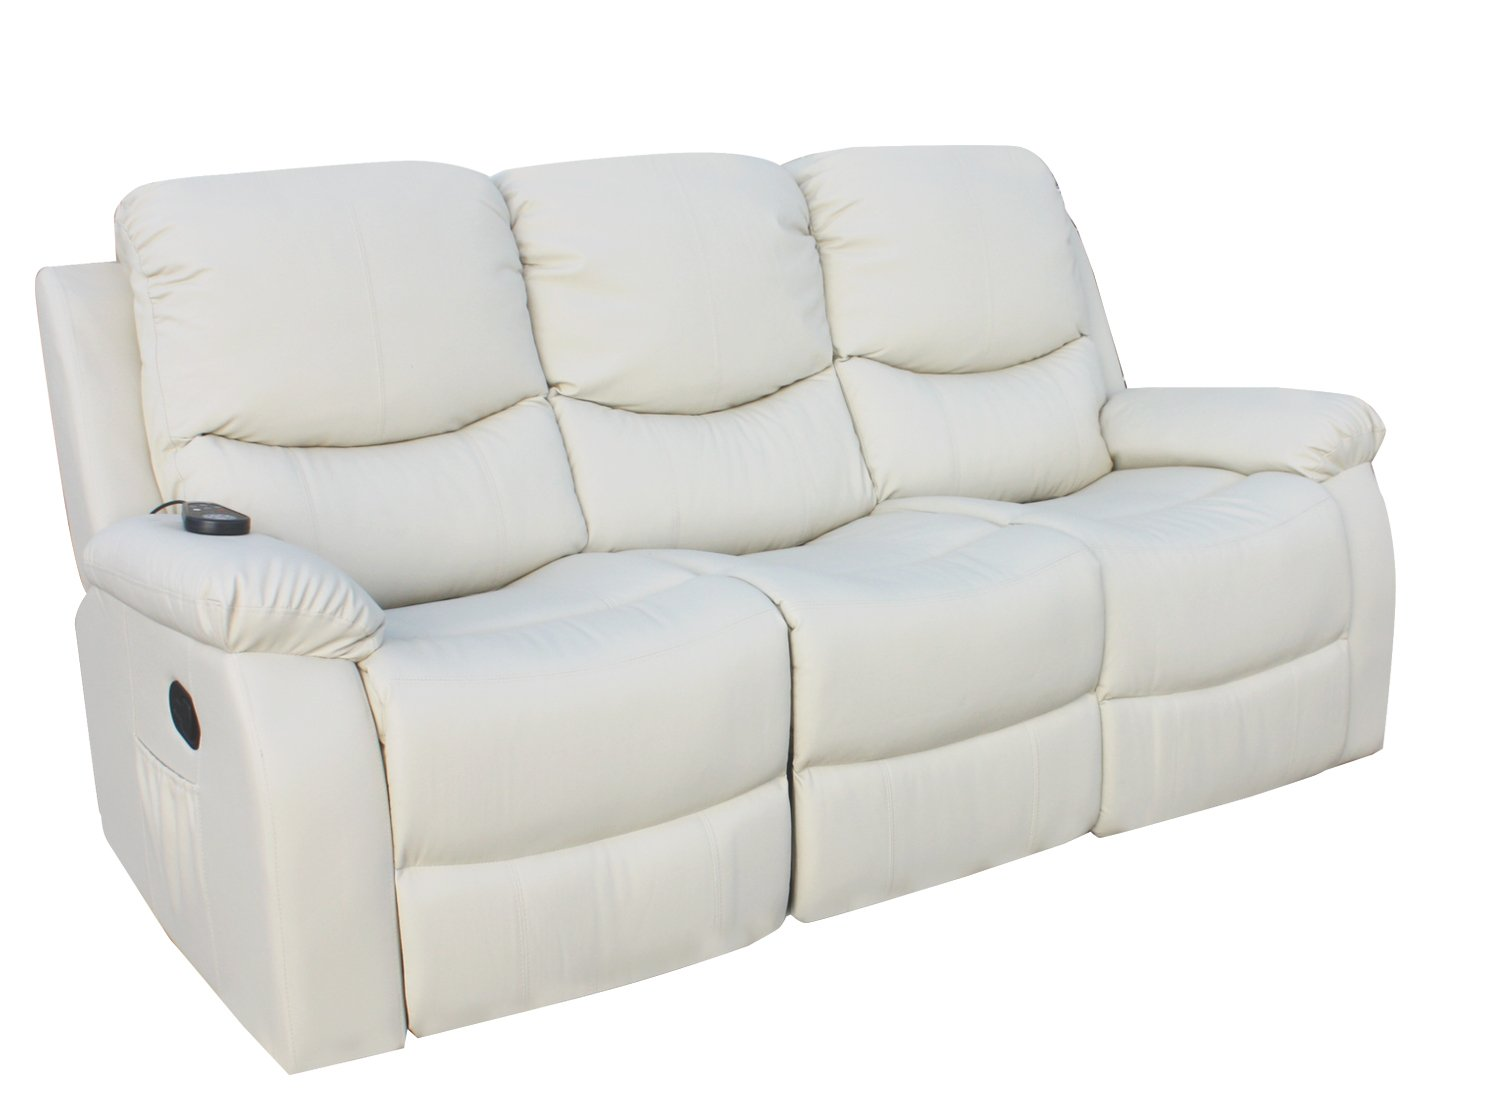 ECO-DE Sofa 3 plazas beige